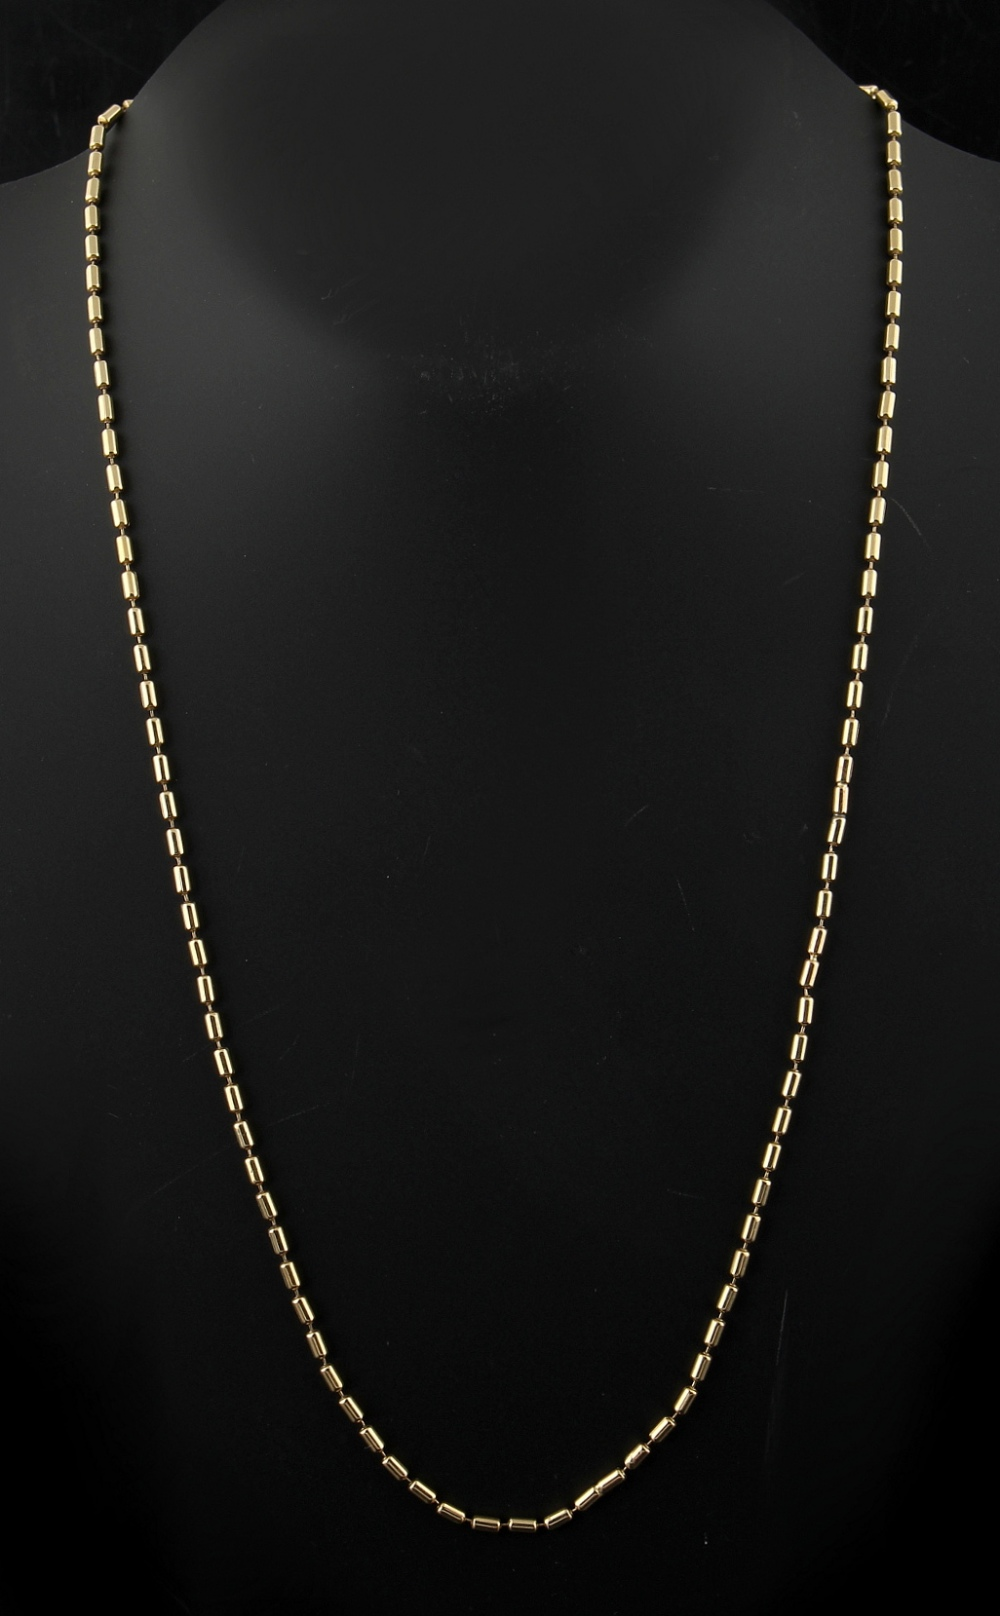 Property of a lady - a 9ct gold chain necklace of tubular form, 24.5ins. (62cms.) long.